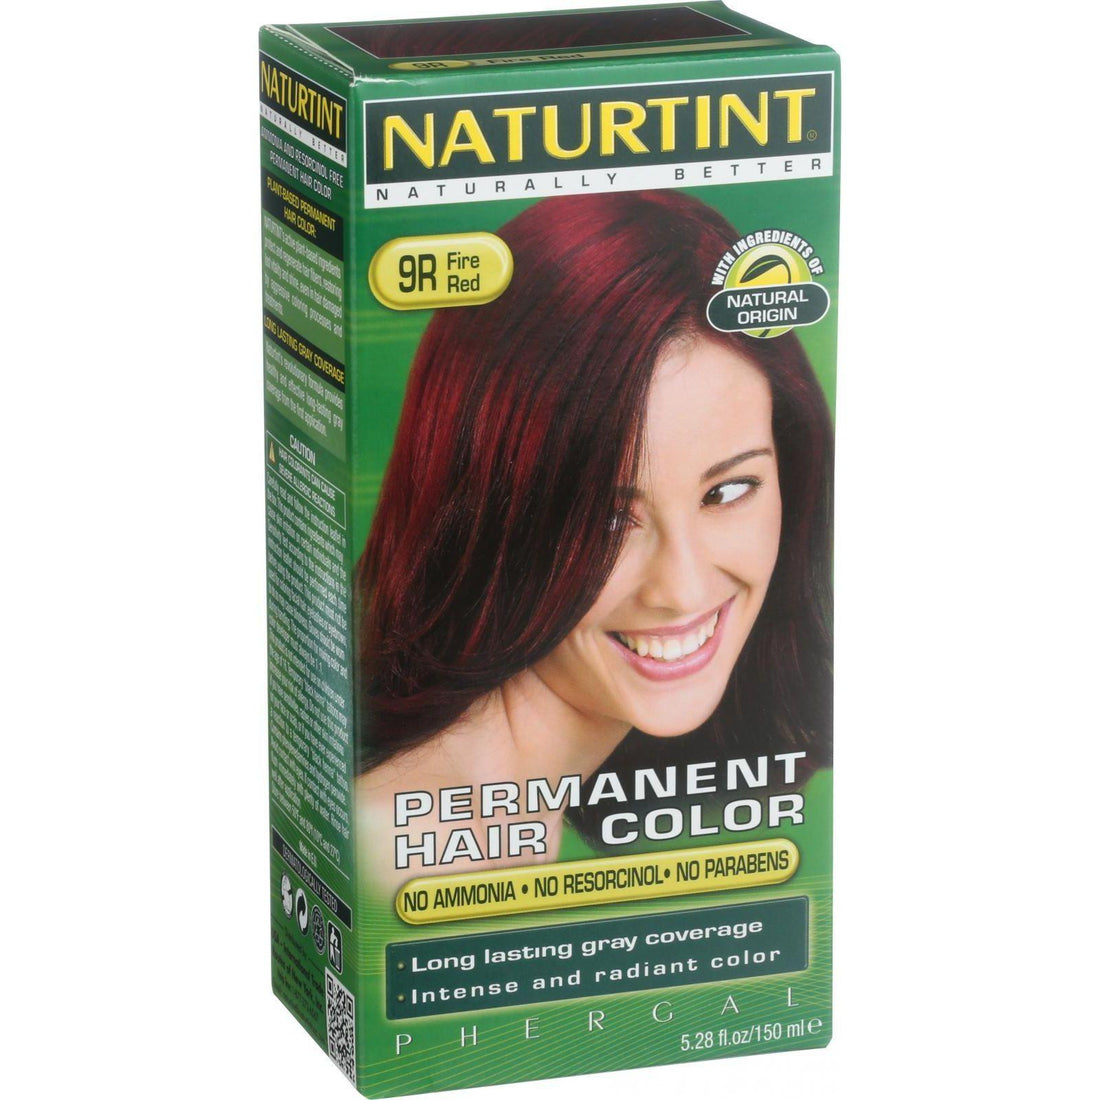 Mother Mantis: 9r Fire Red Hair Color Naturtint